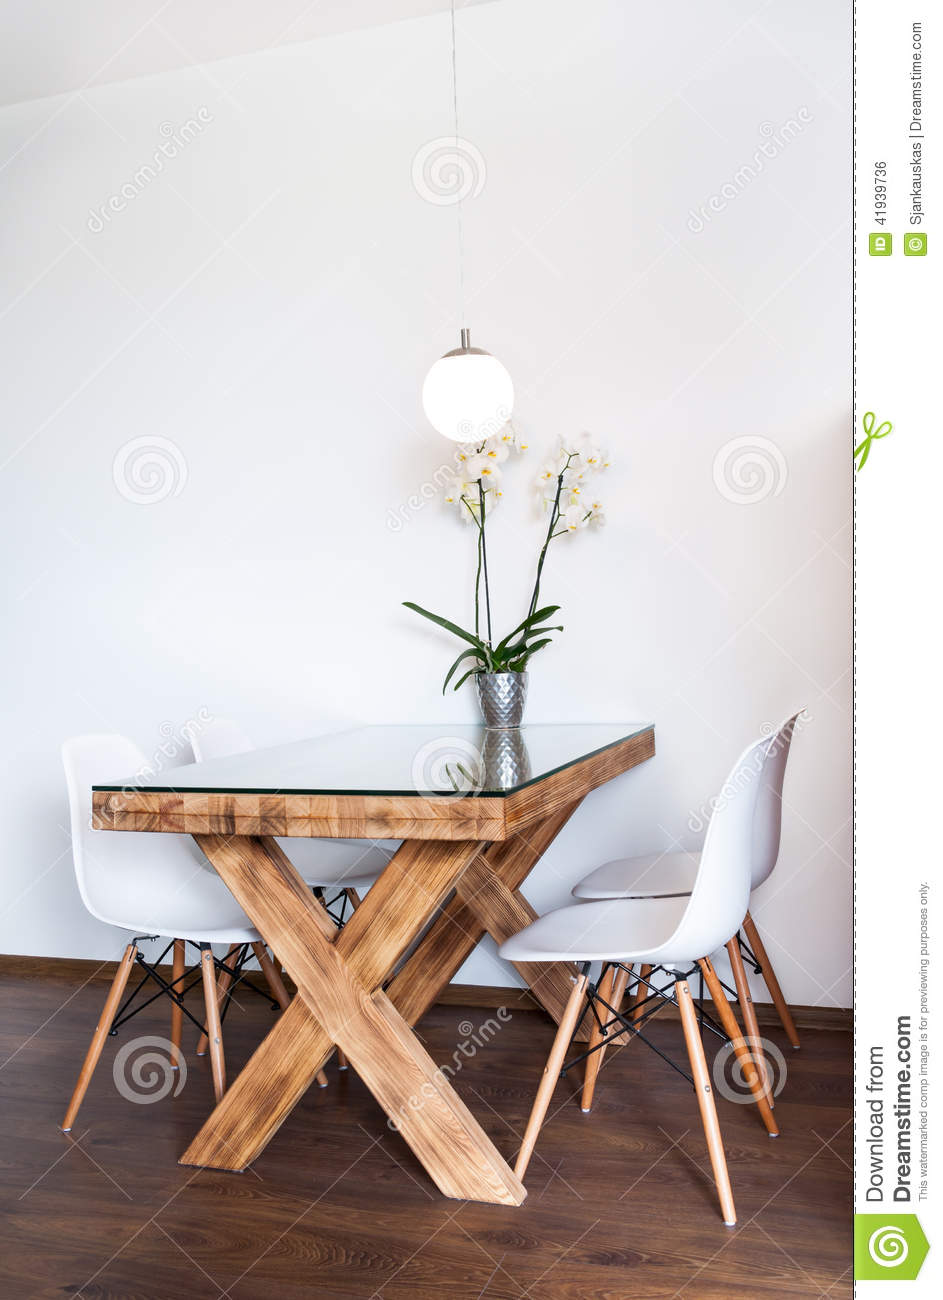 Dining Table In A Small Hotel Apartment With Orchid Flowers